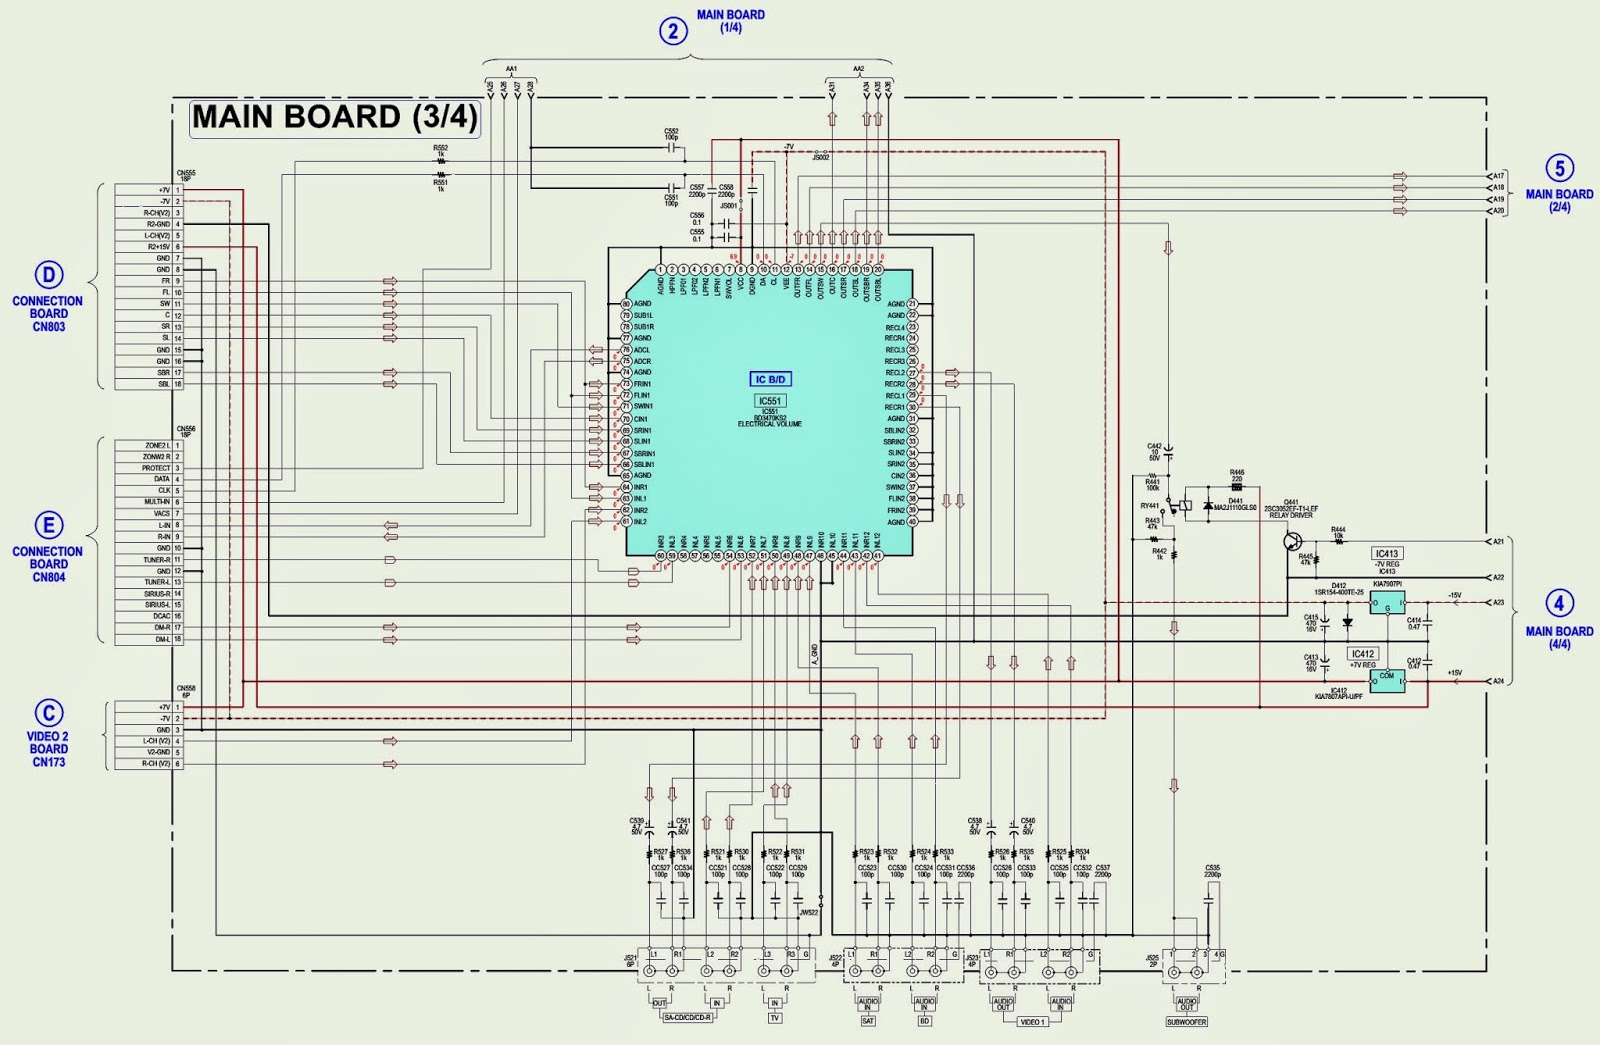 Sony Str Km7600 Australia Main Board on electronic circuit diagrams